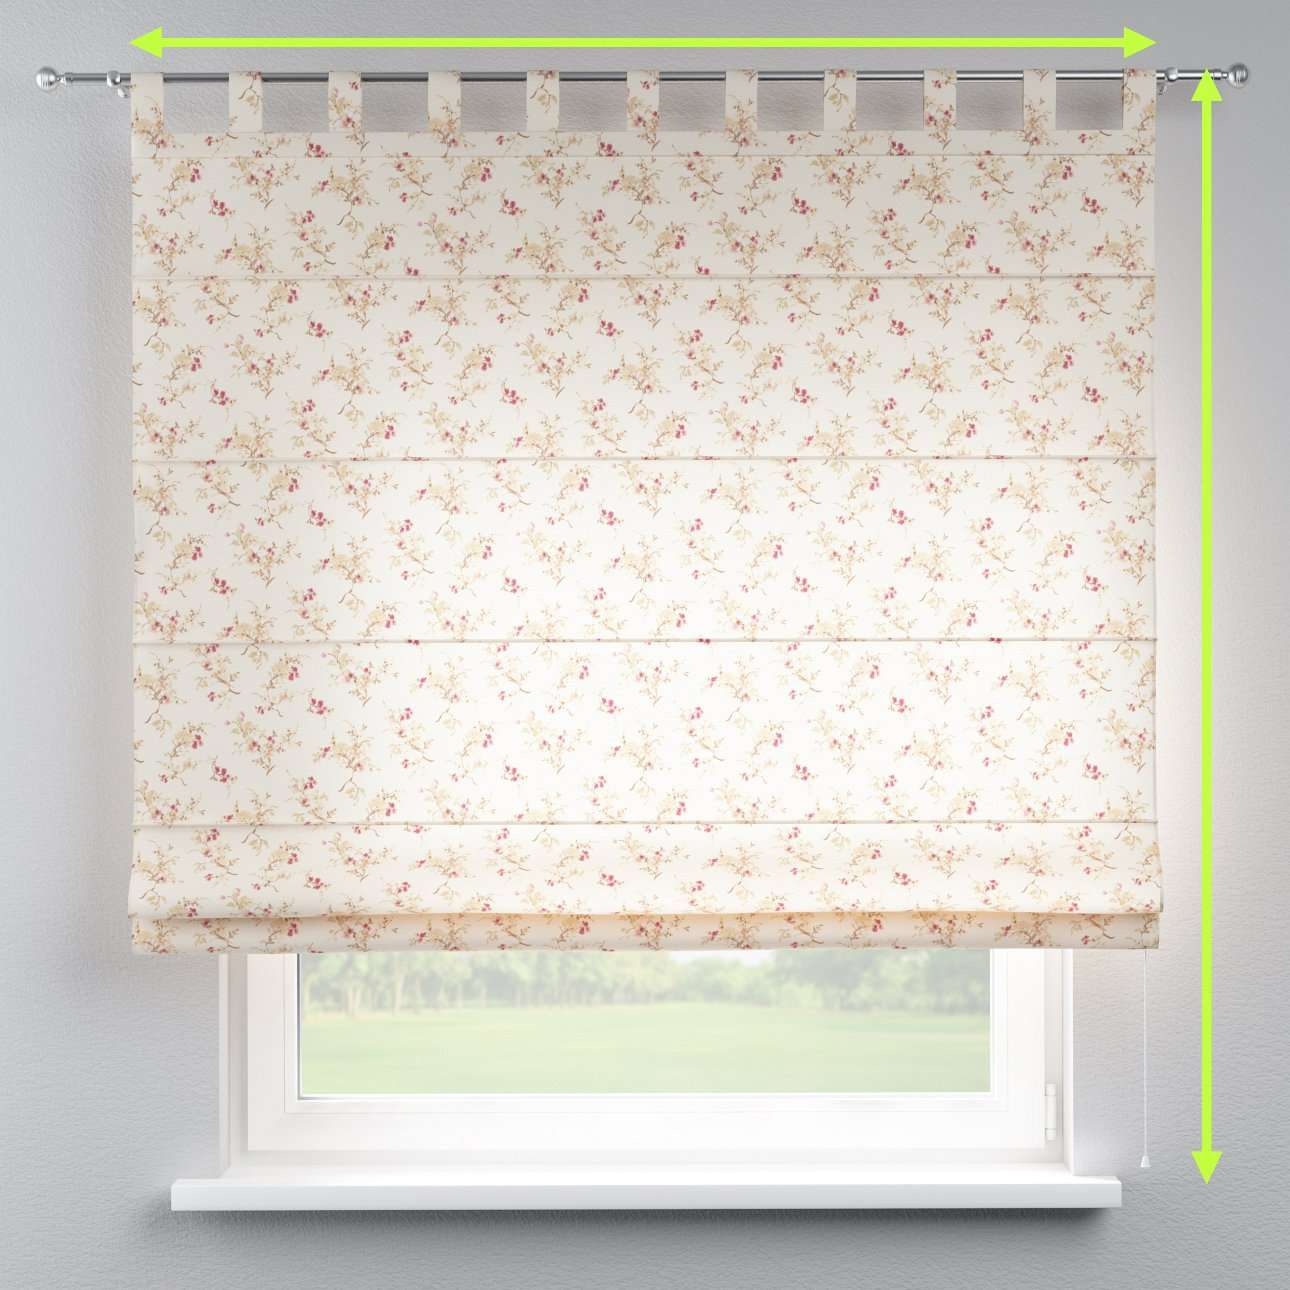 Verona tab top roman blind in collection Mirella, fabric: 141-11